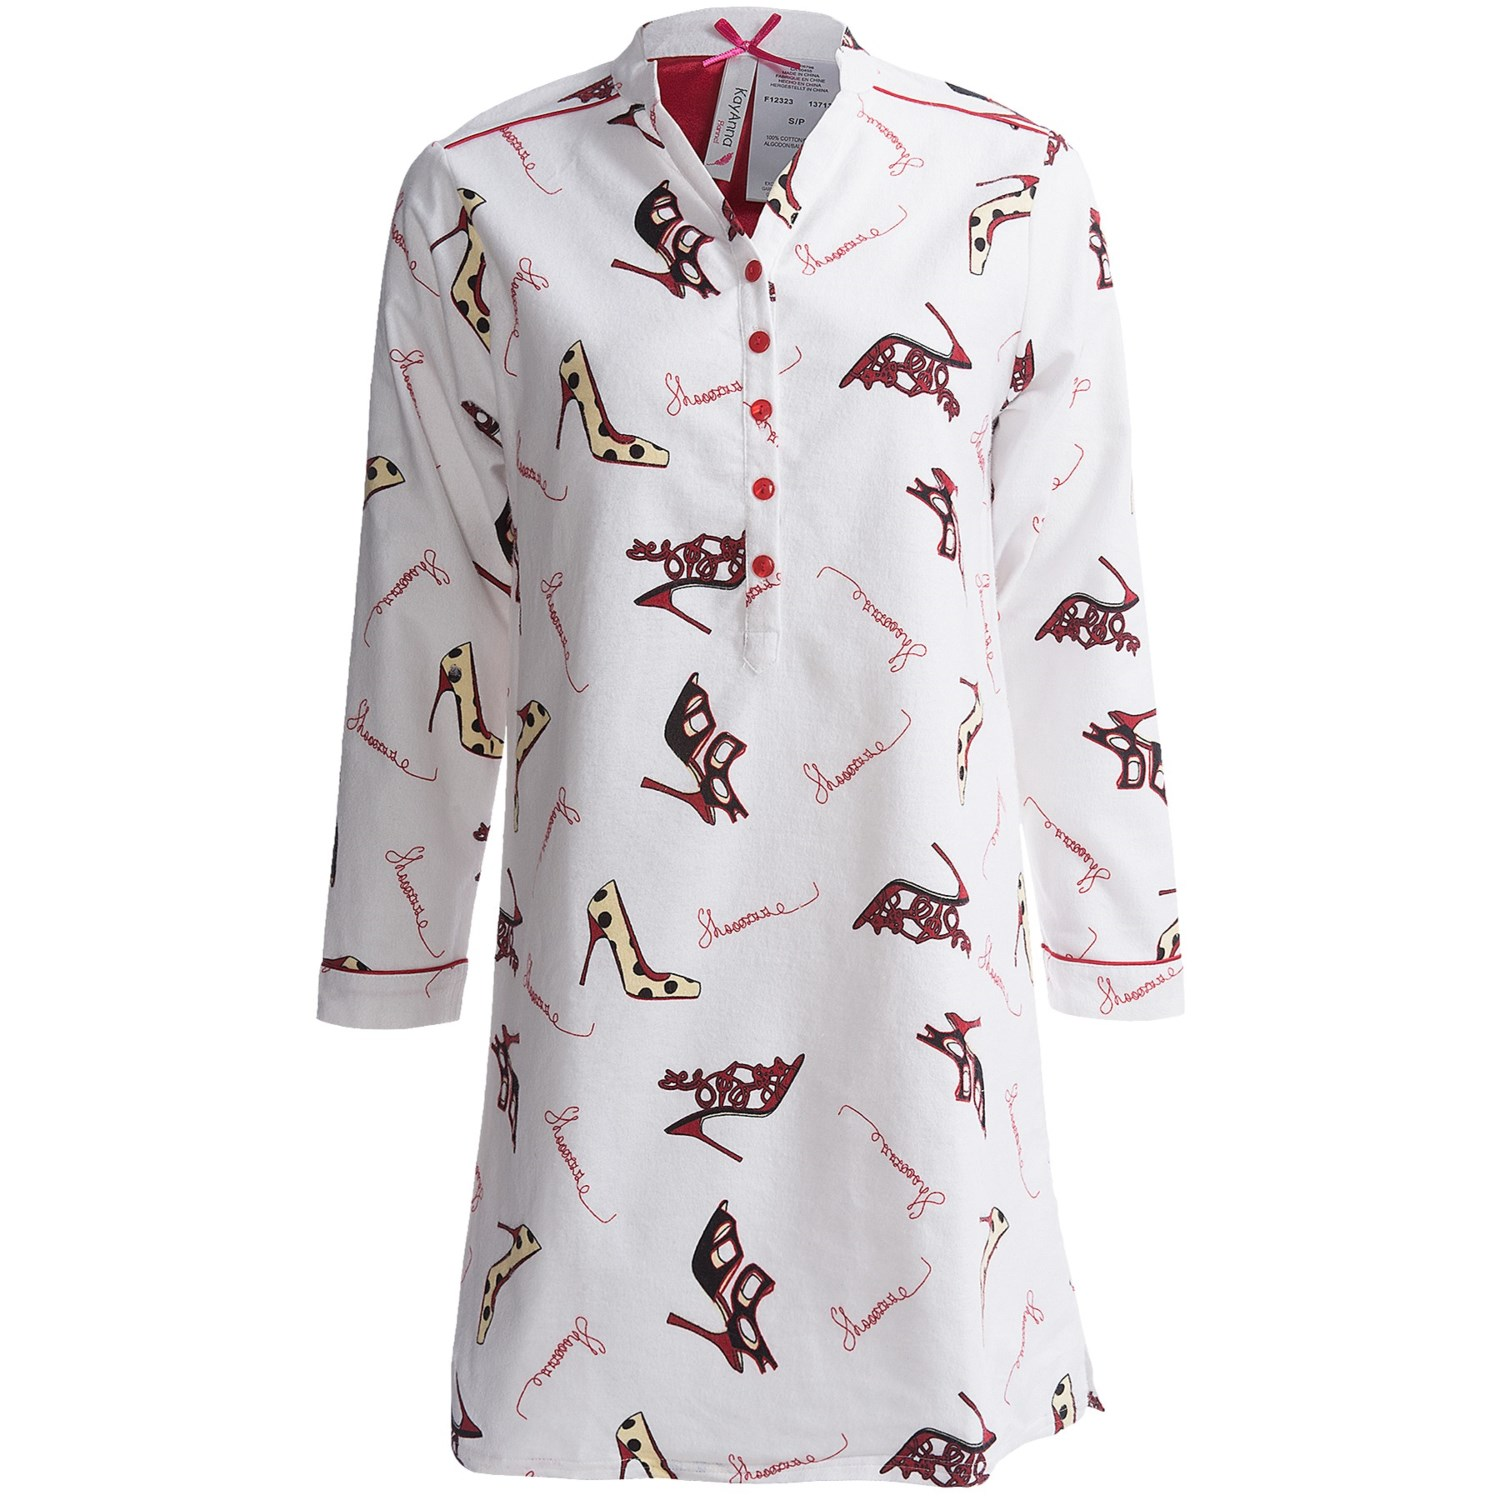 Kayanna printed flannel nightshirt long sleeve for for Womens flannel night shirts